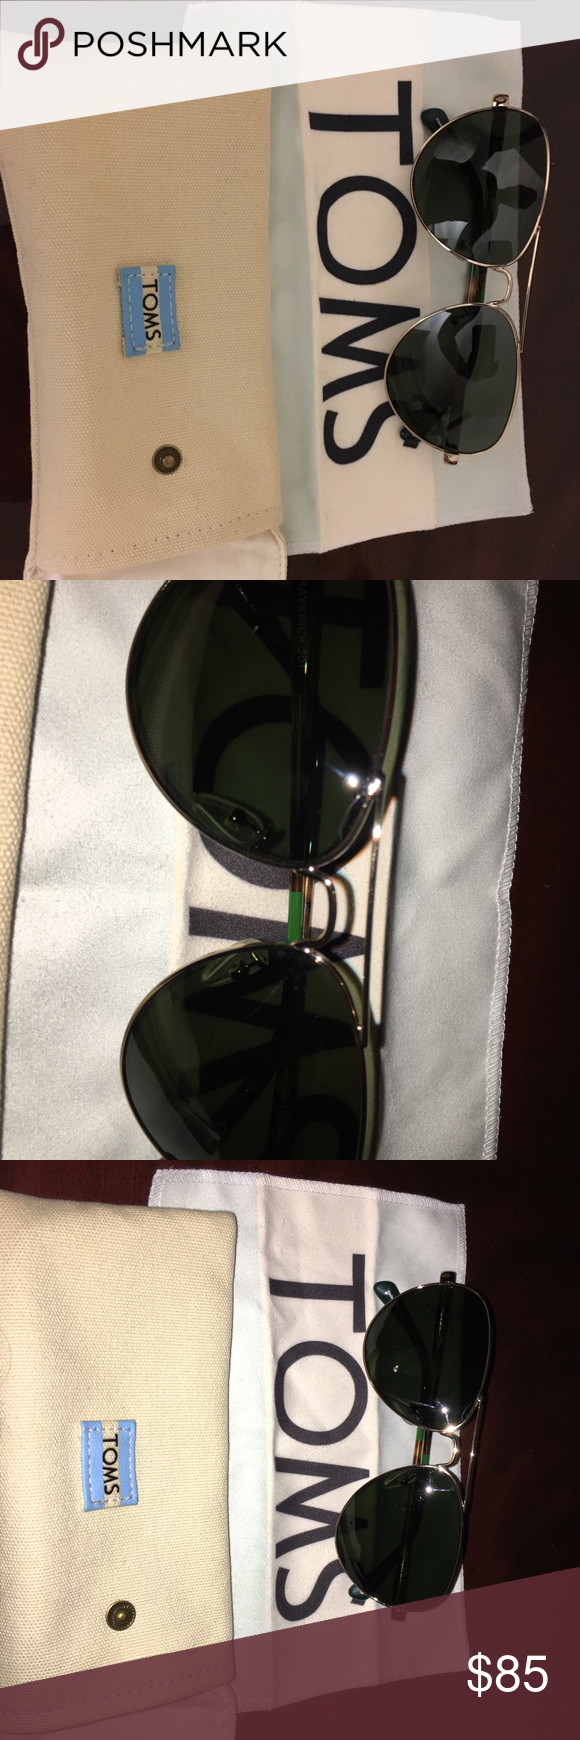 6d7ac290b4f Toms Aviators Carpe Diem Brand new and in excellent condition. No  scratches. Authentic Toms Sunglasses. Toms Accessories Glasses